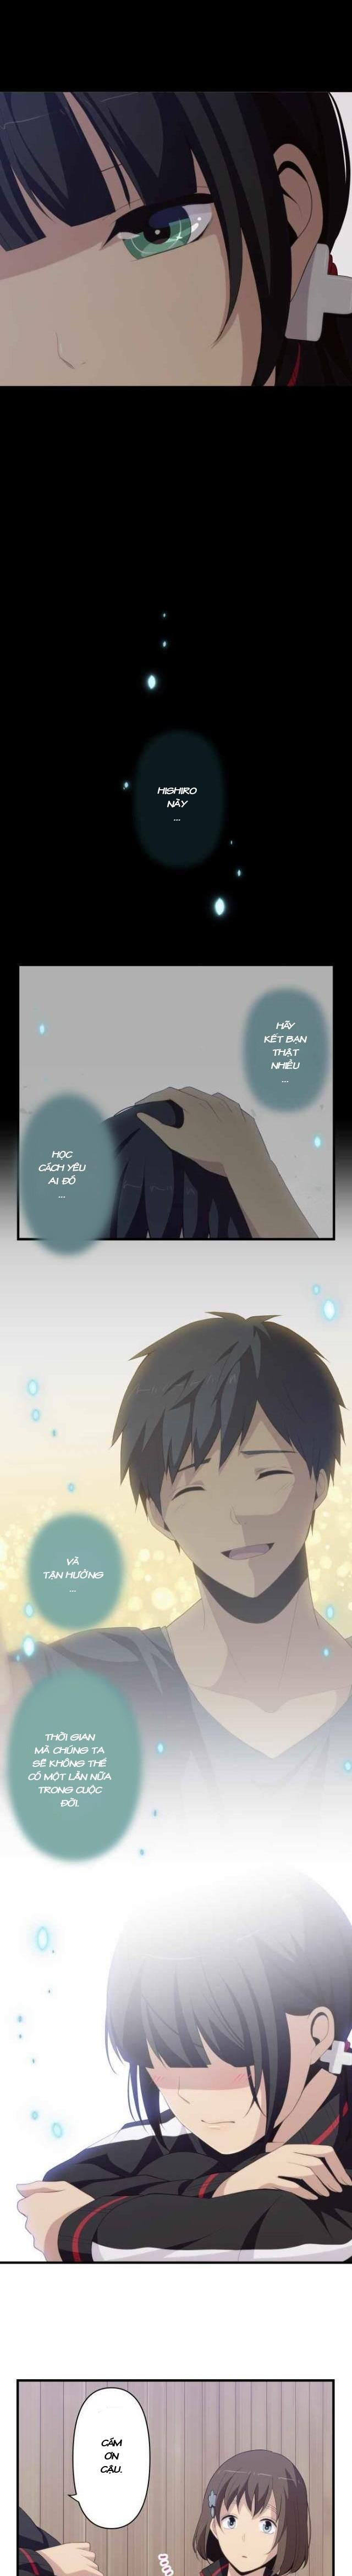 ReLIFE